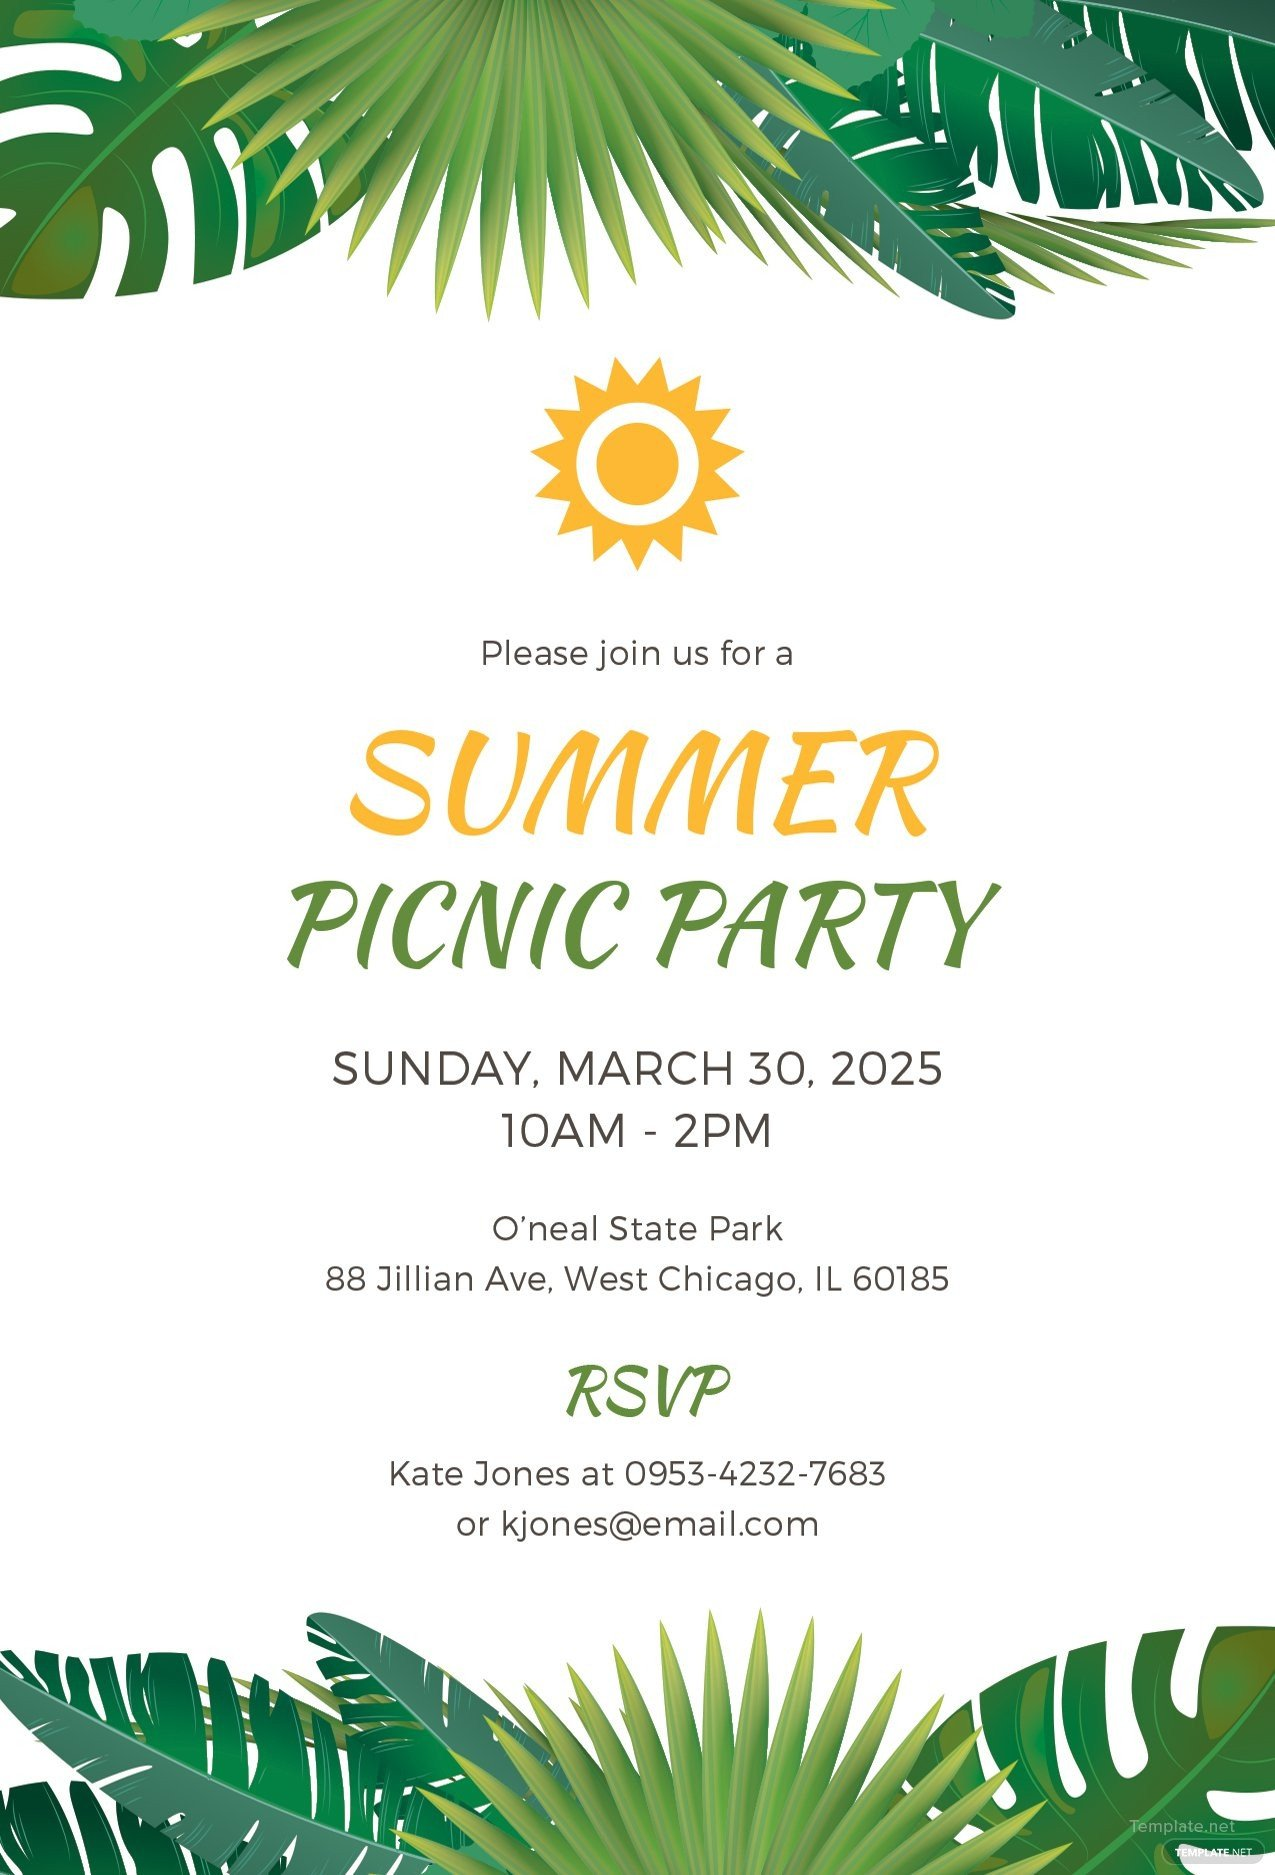 Summer Party Invites Templates Free Summer Picnic Party Invitation Template In Microsoft